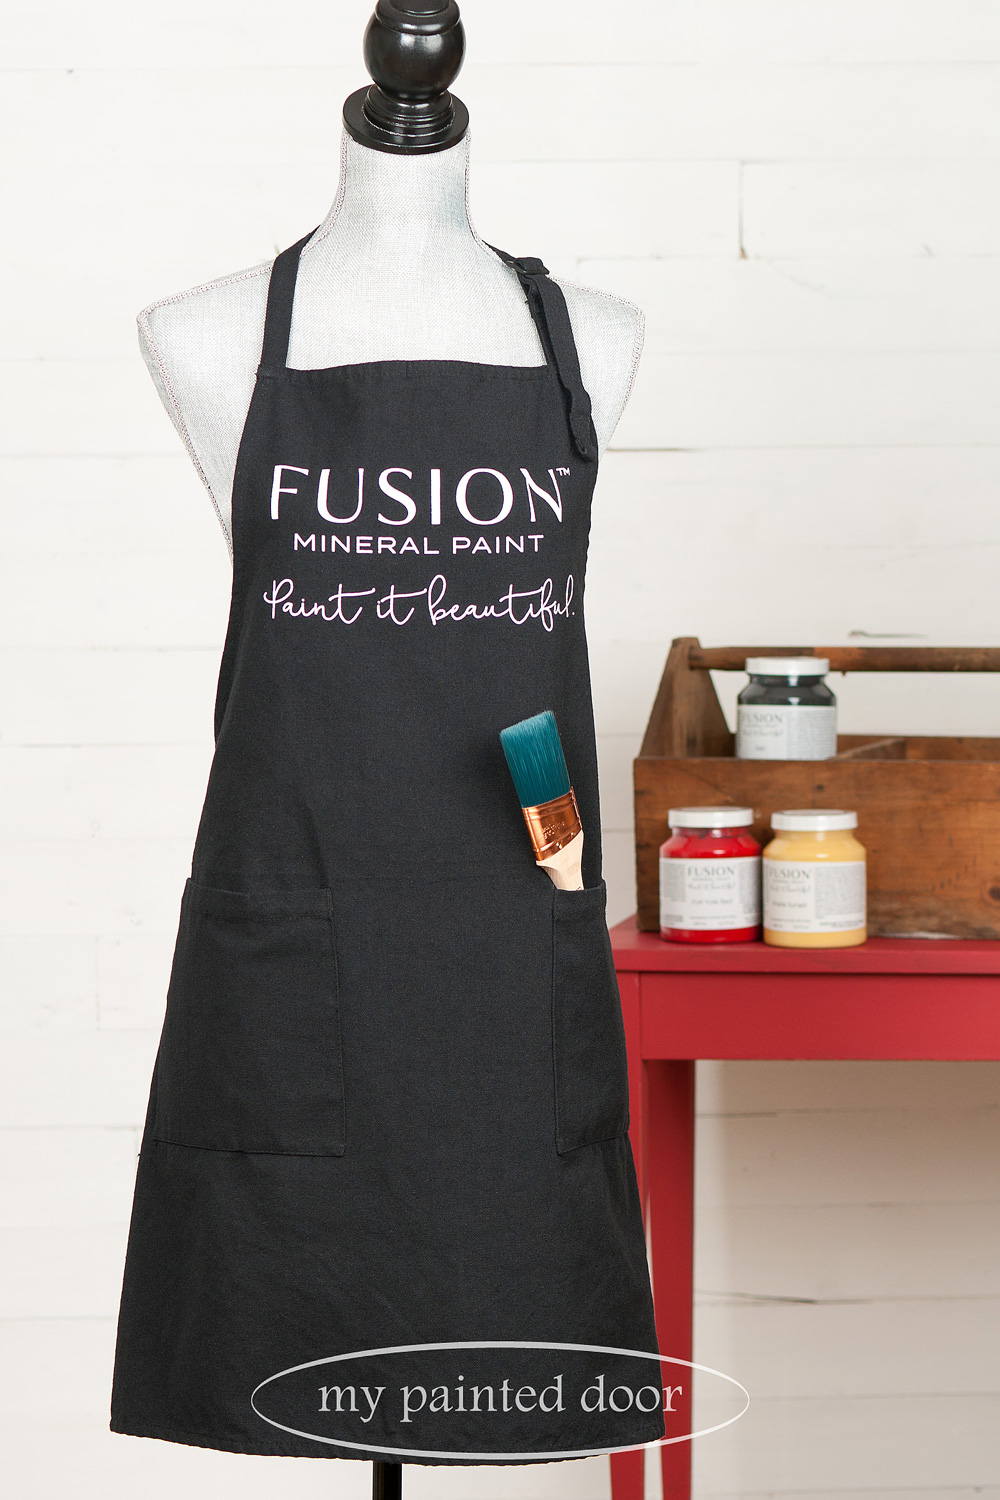 Fusion Mineral Paint apron available at My Painted Door